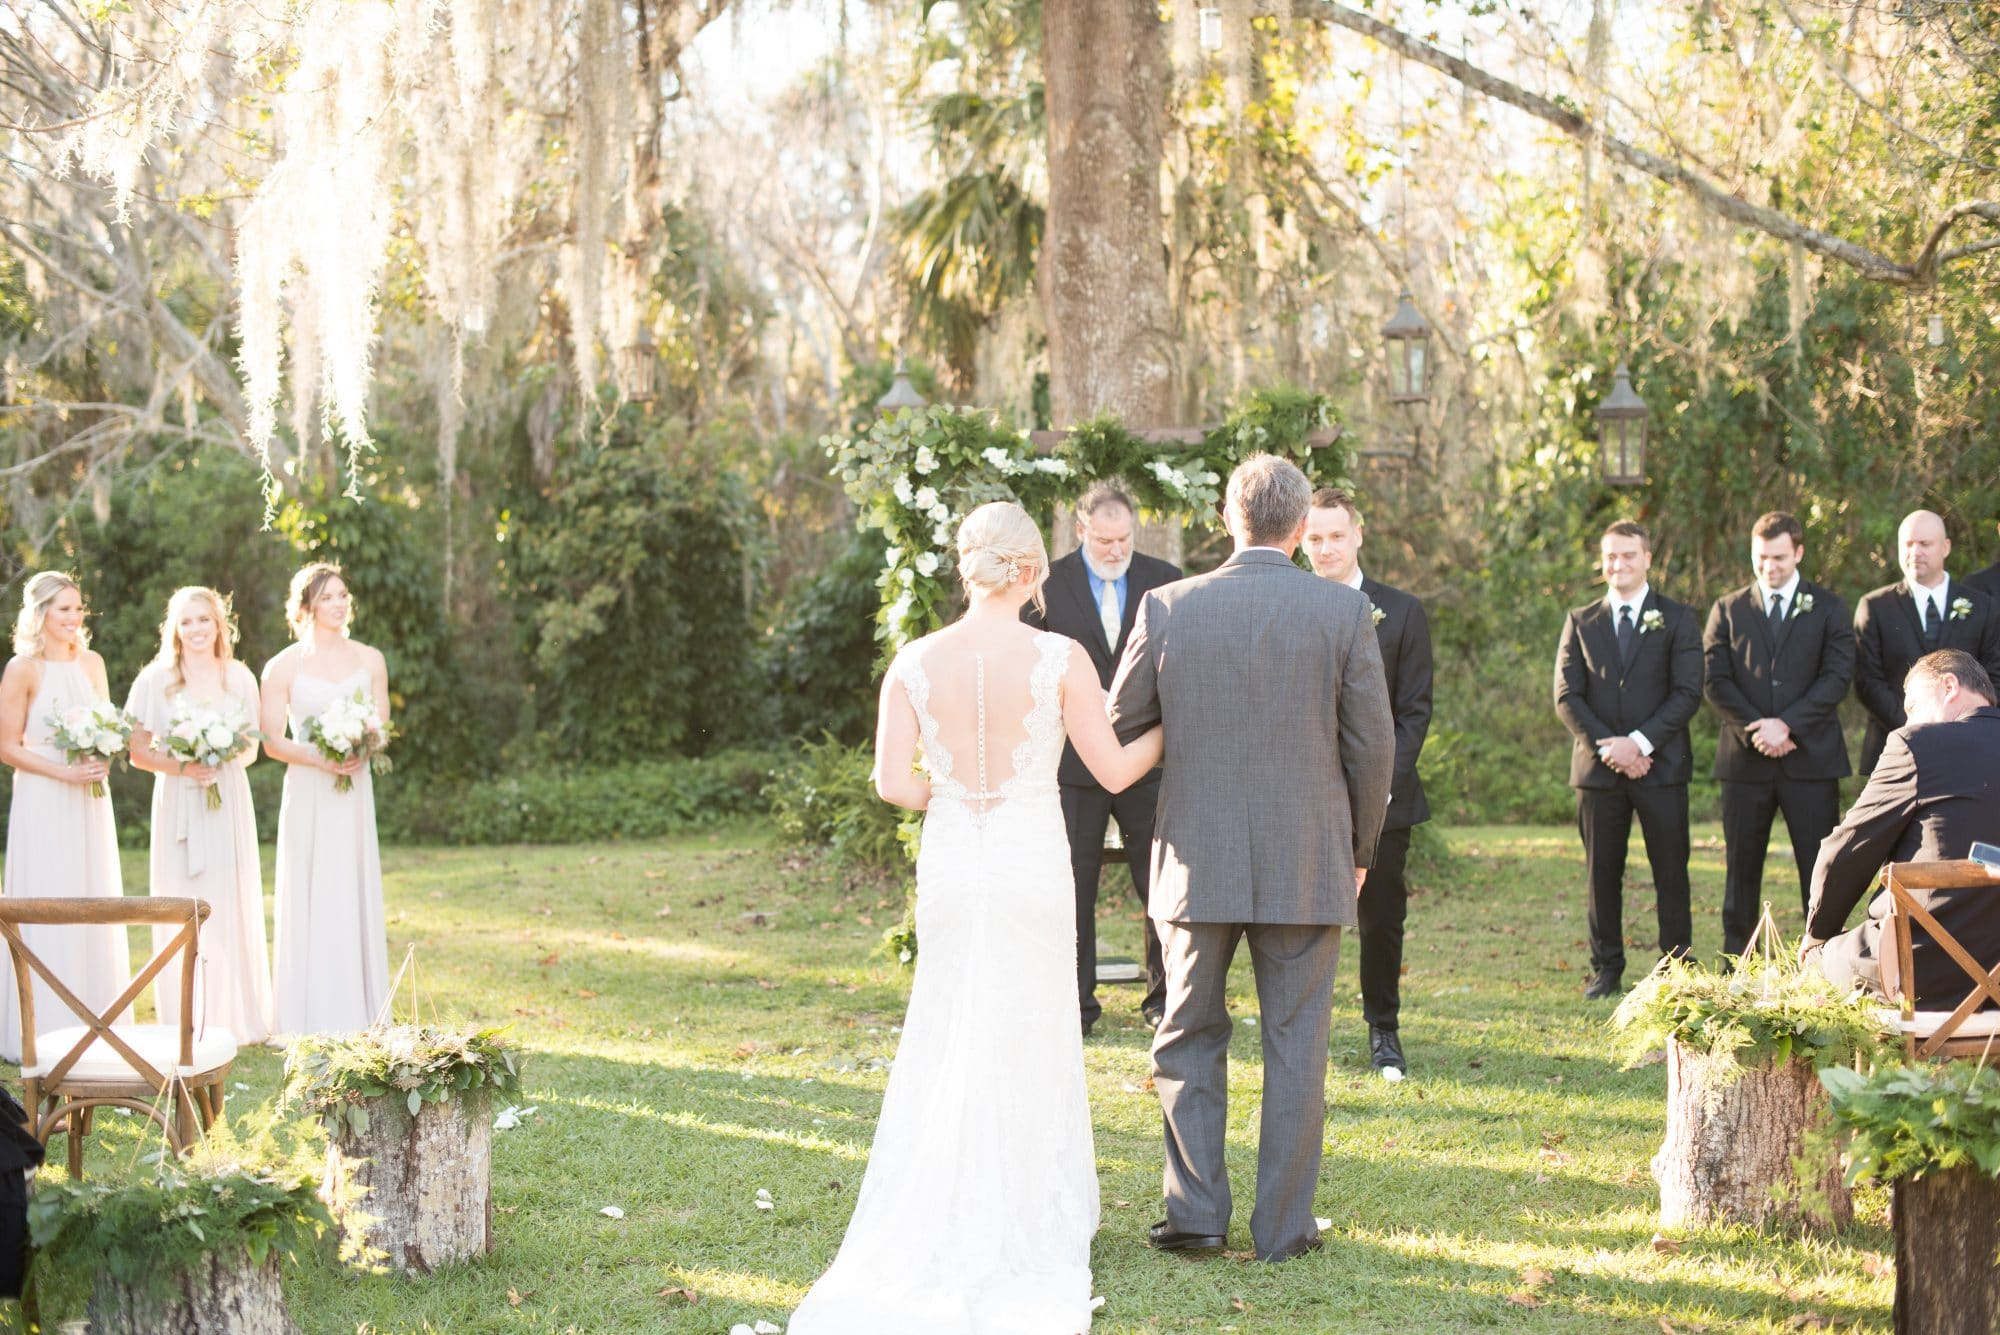 The Magnolia Company - outdoor wedding ceremony under greenery-draped arch